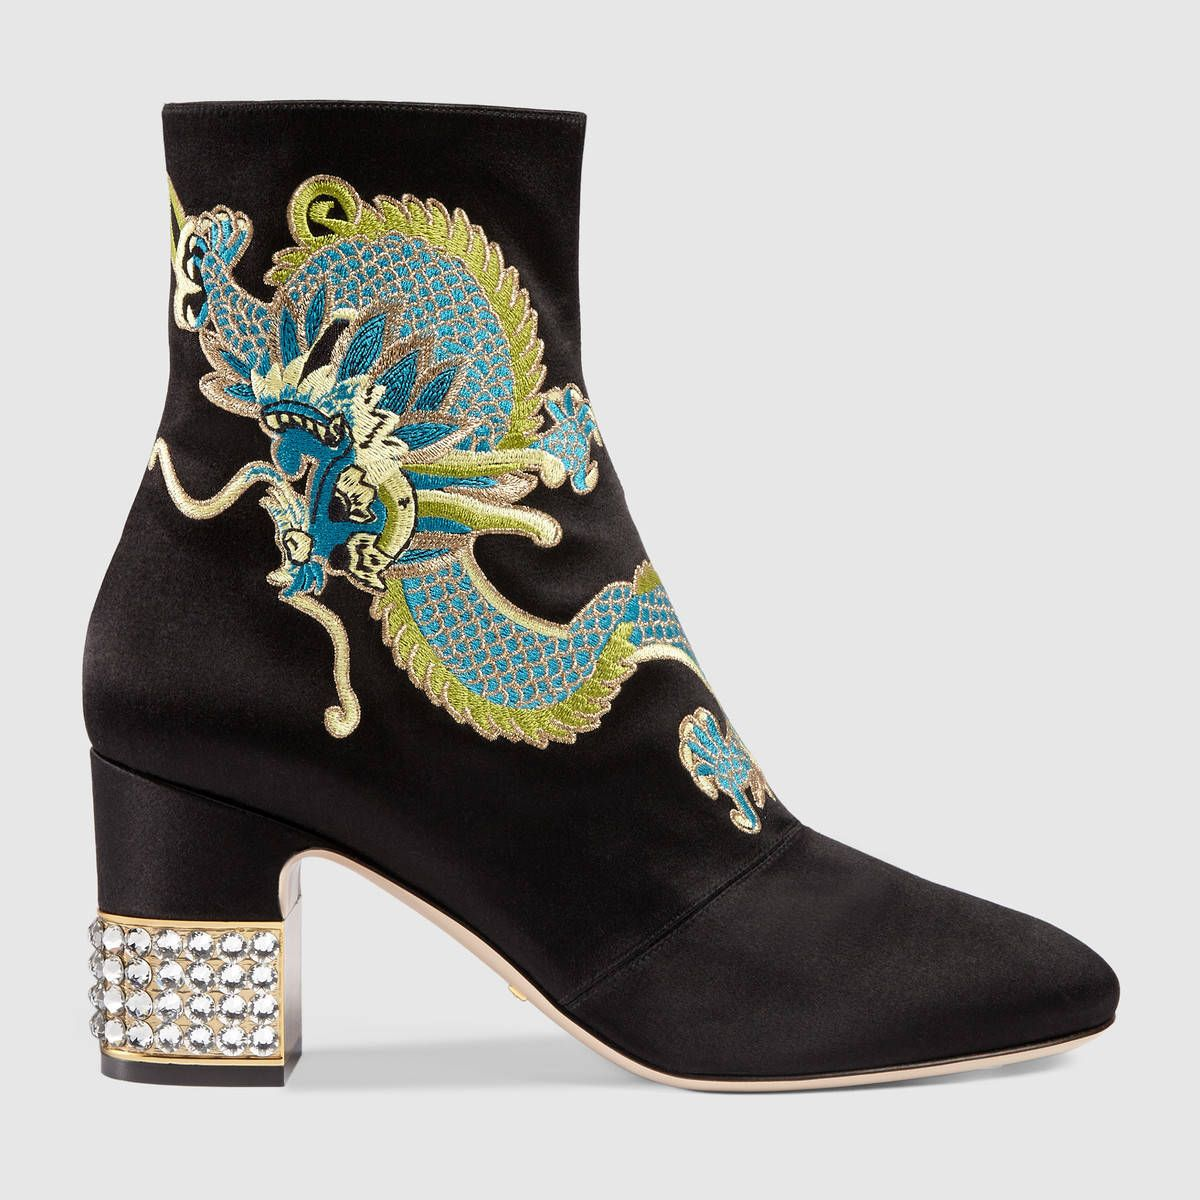 e5e7199448fb7 Gucci Dragon satin mid-heel ankle boot Detail 5 | My Shoes in 2019 ...